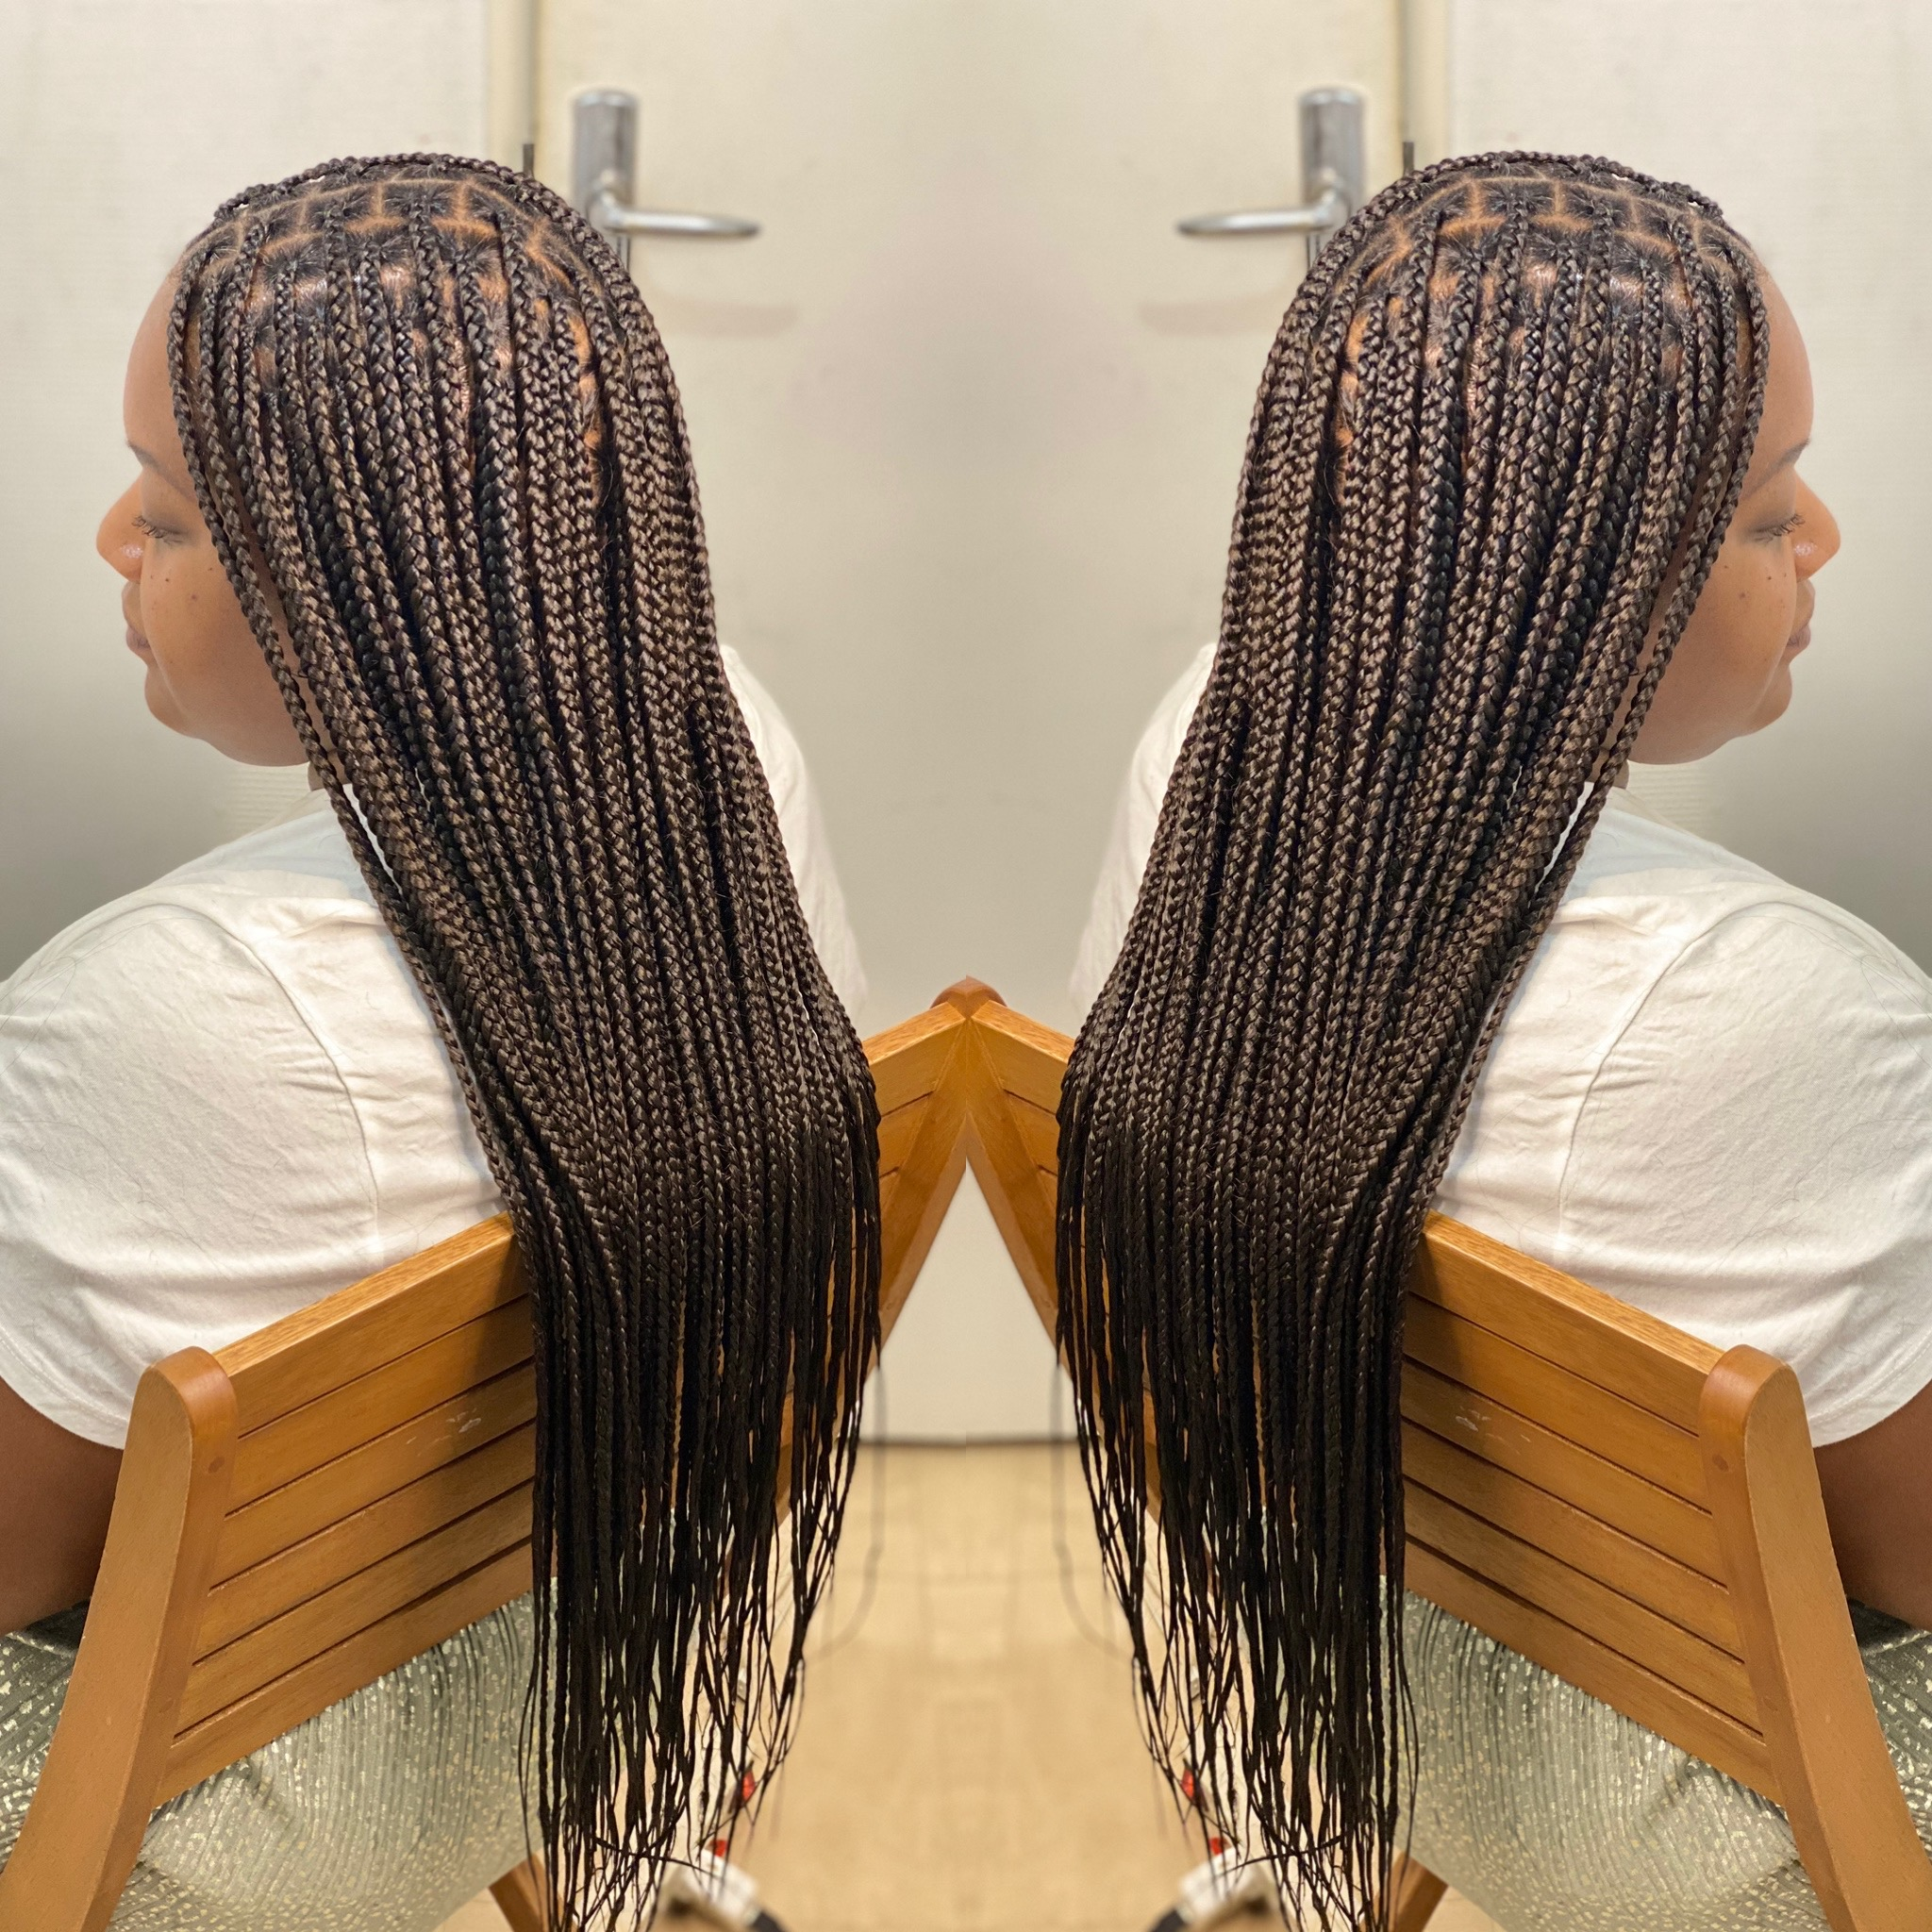 salon de coiffure afro tresse tresses box braids crochet braids vanilles tissages paris 75 77 78 91 92 93 94 95 VNYOGVYO